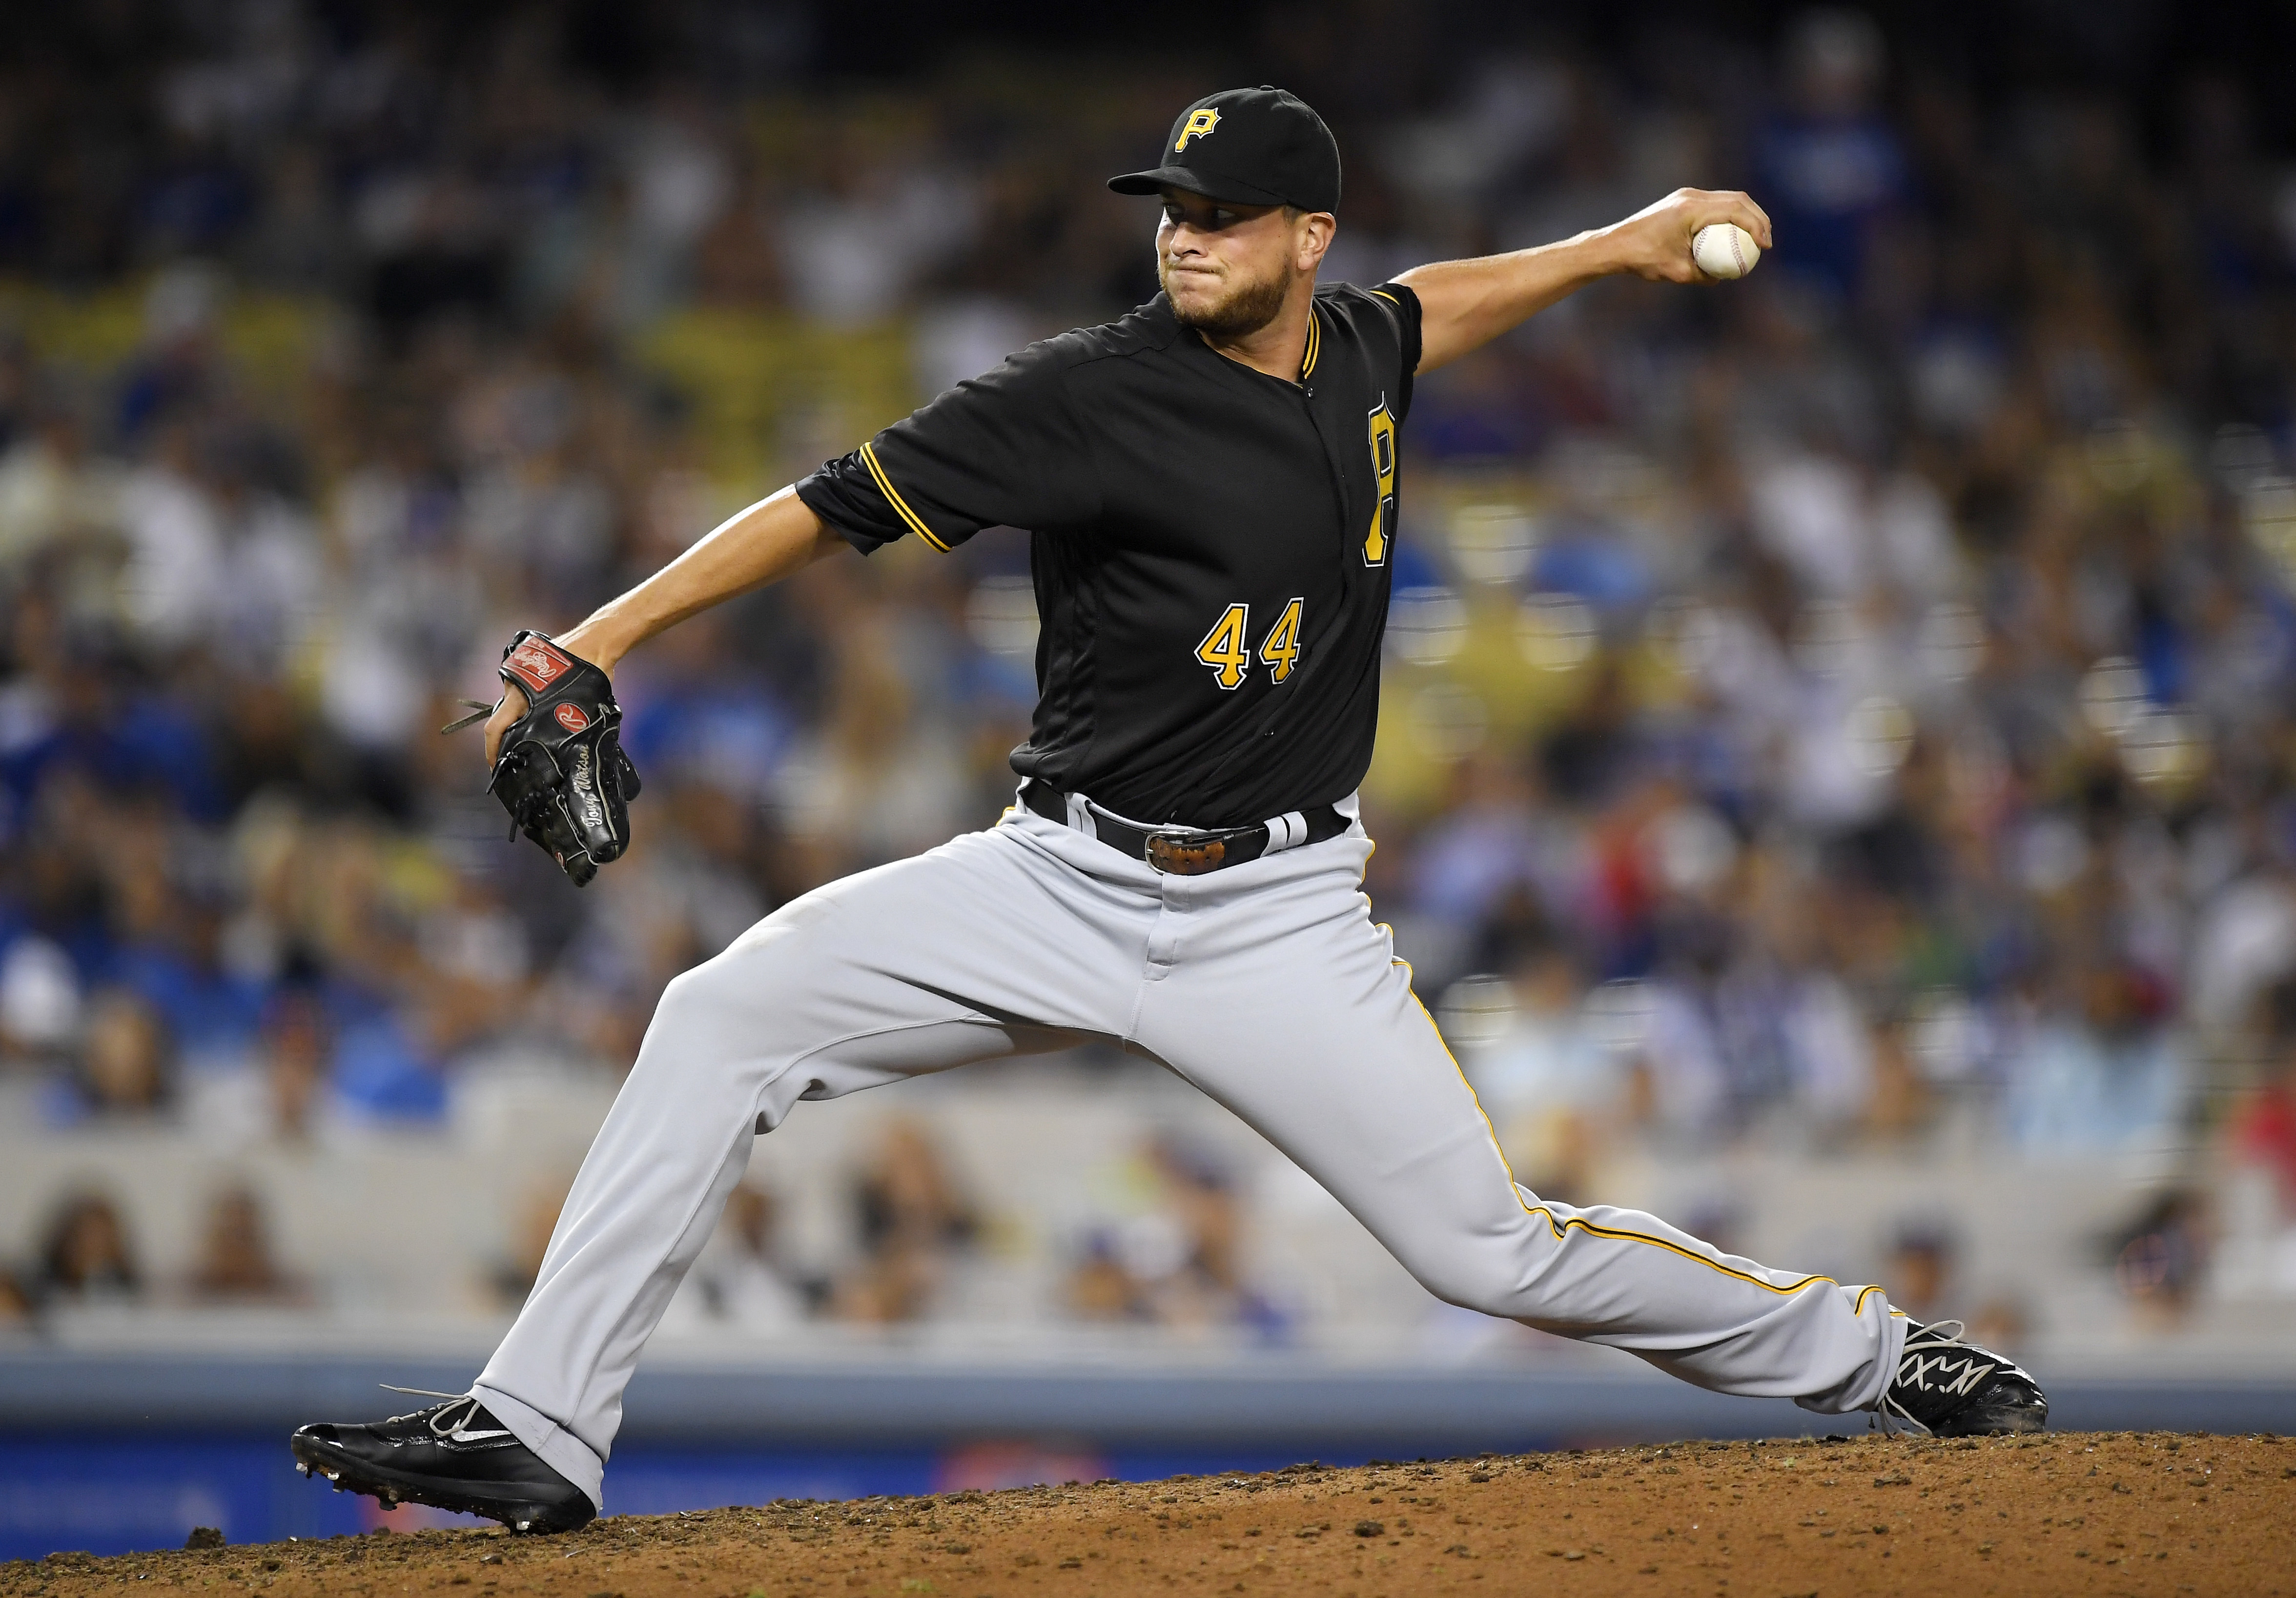 Pittsburgh Pirates relief pitcher Tony Watson throws during the ninth inning of a baseball game against the Los Angeles Dodgers, Friday, Aug. 12, 2016, in Los Angeles. The Pirates won 5-1. (AP Photo/Mark J. Terrill)